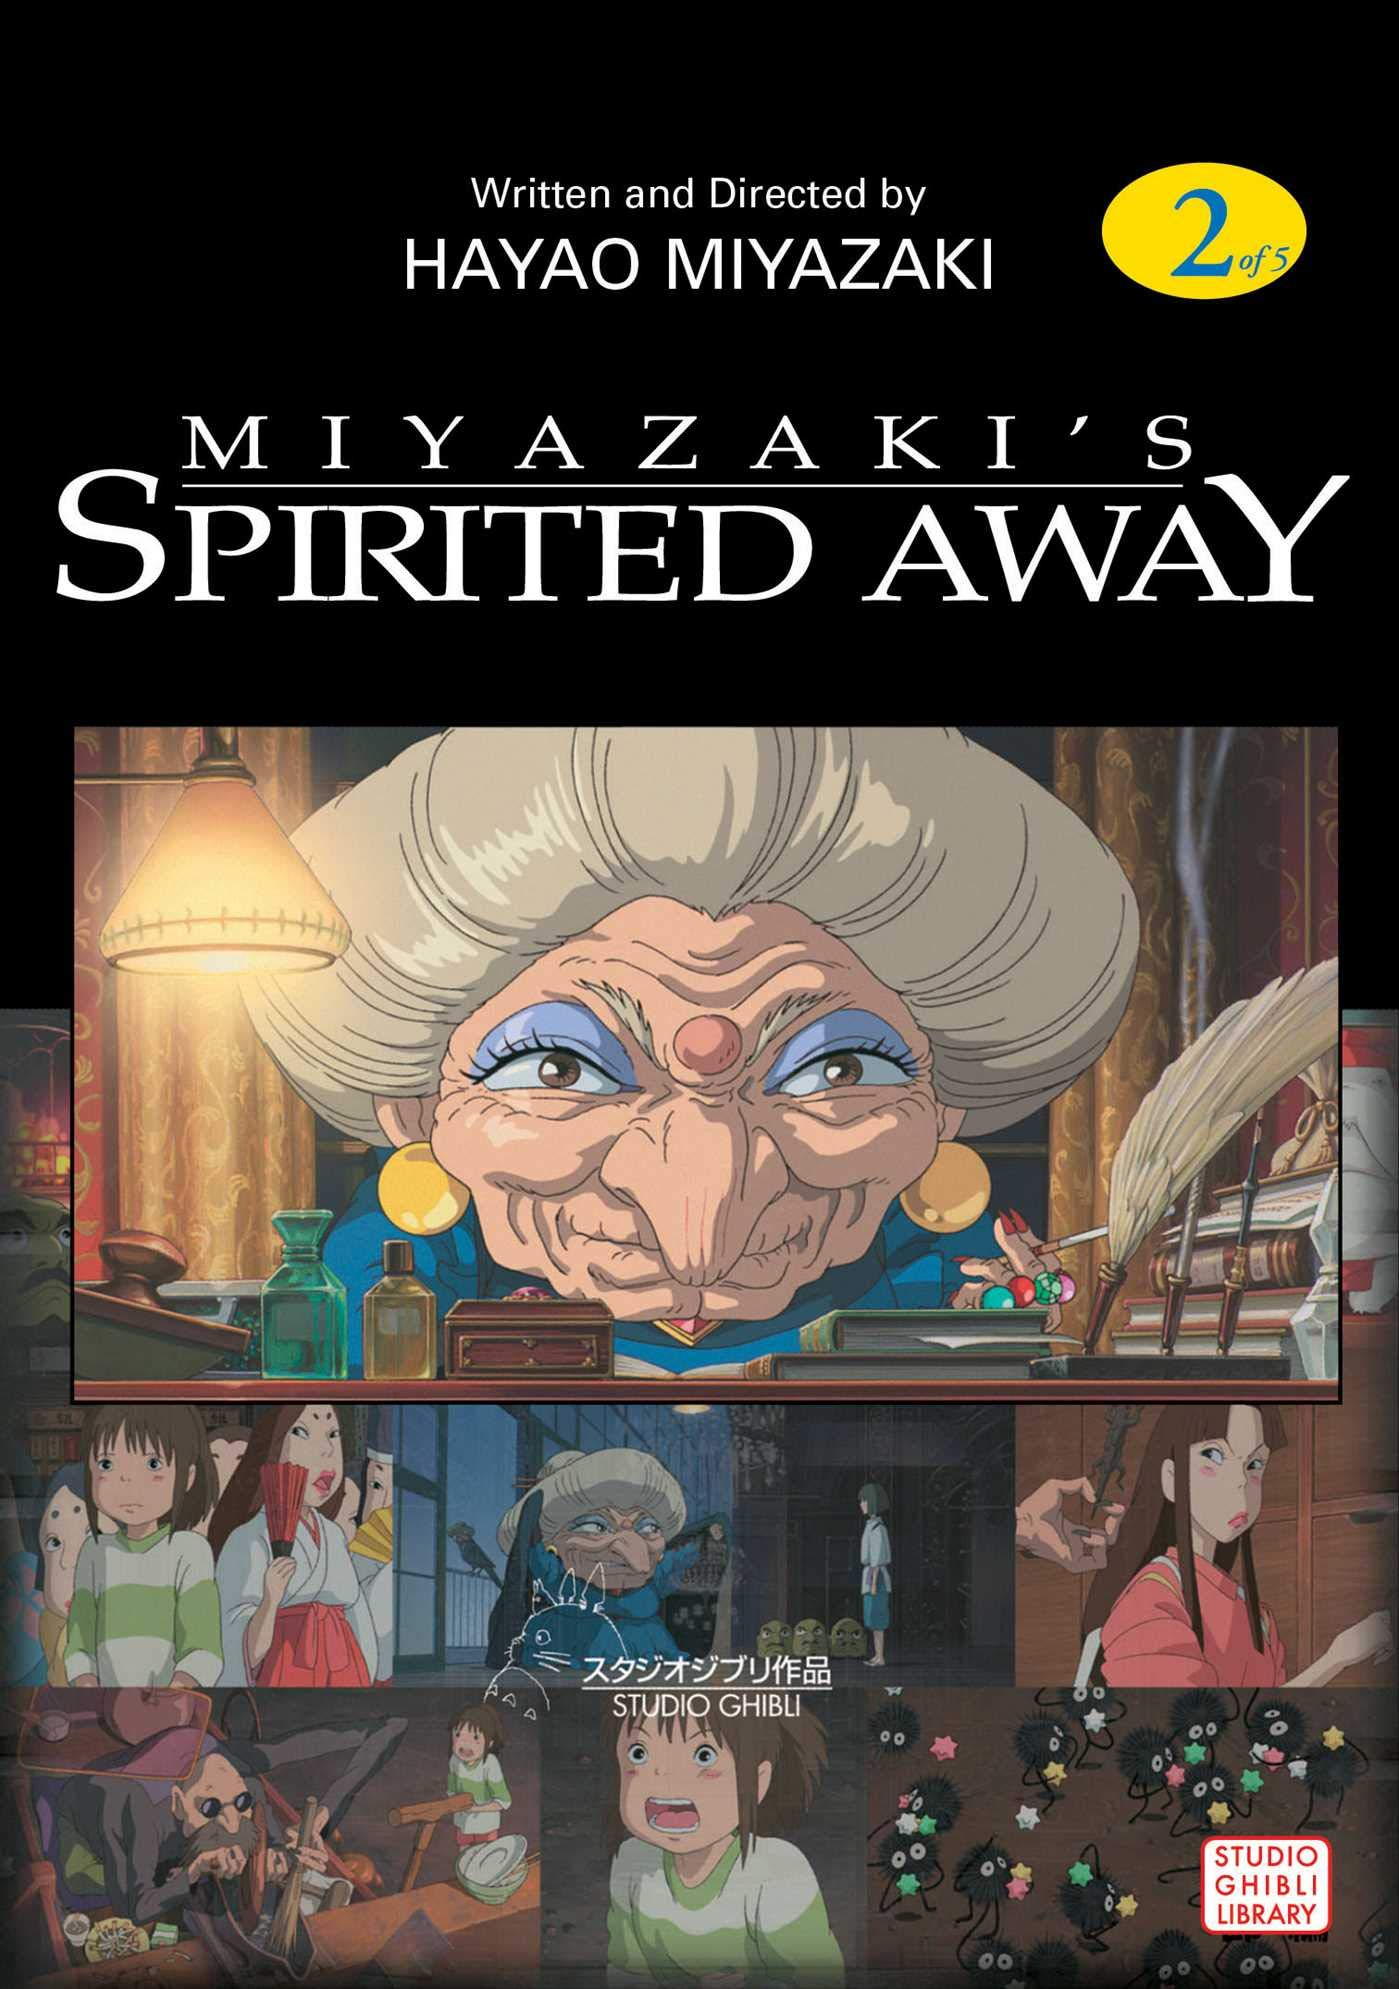 Spirited Away Vol 2 Spirited Away Film Comics Miyazaki Hayao Miyazaki Hayao 9781569317921 Amazon Com Books